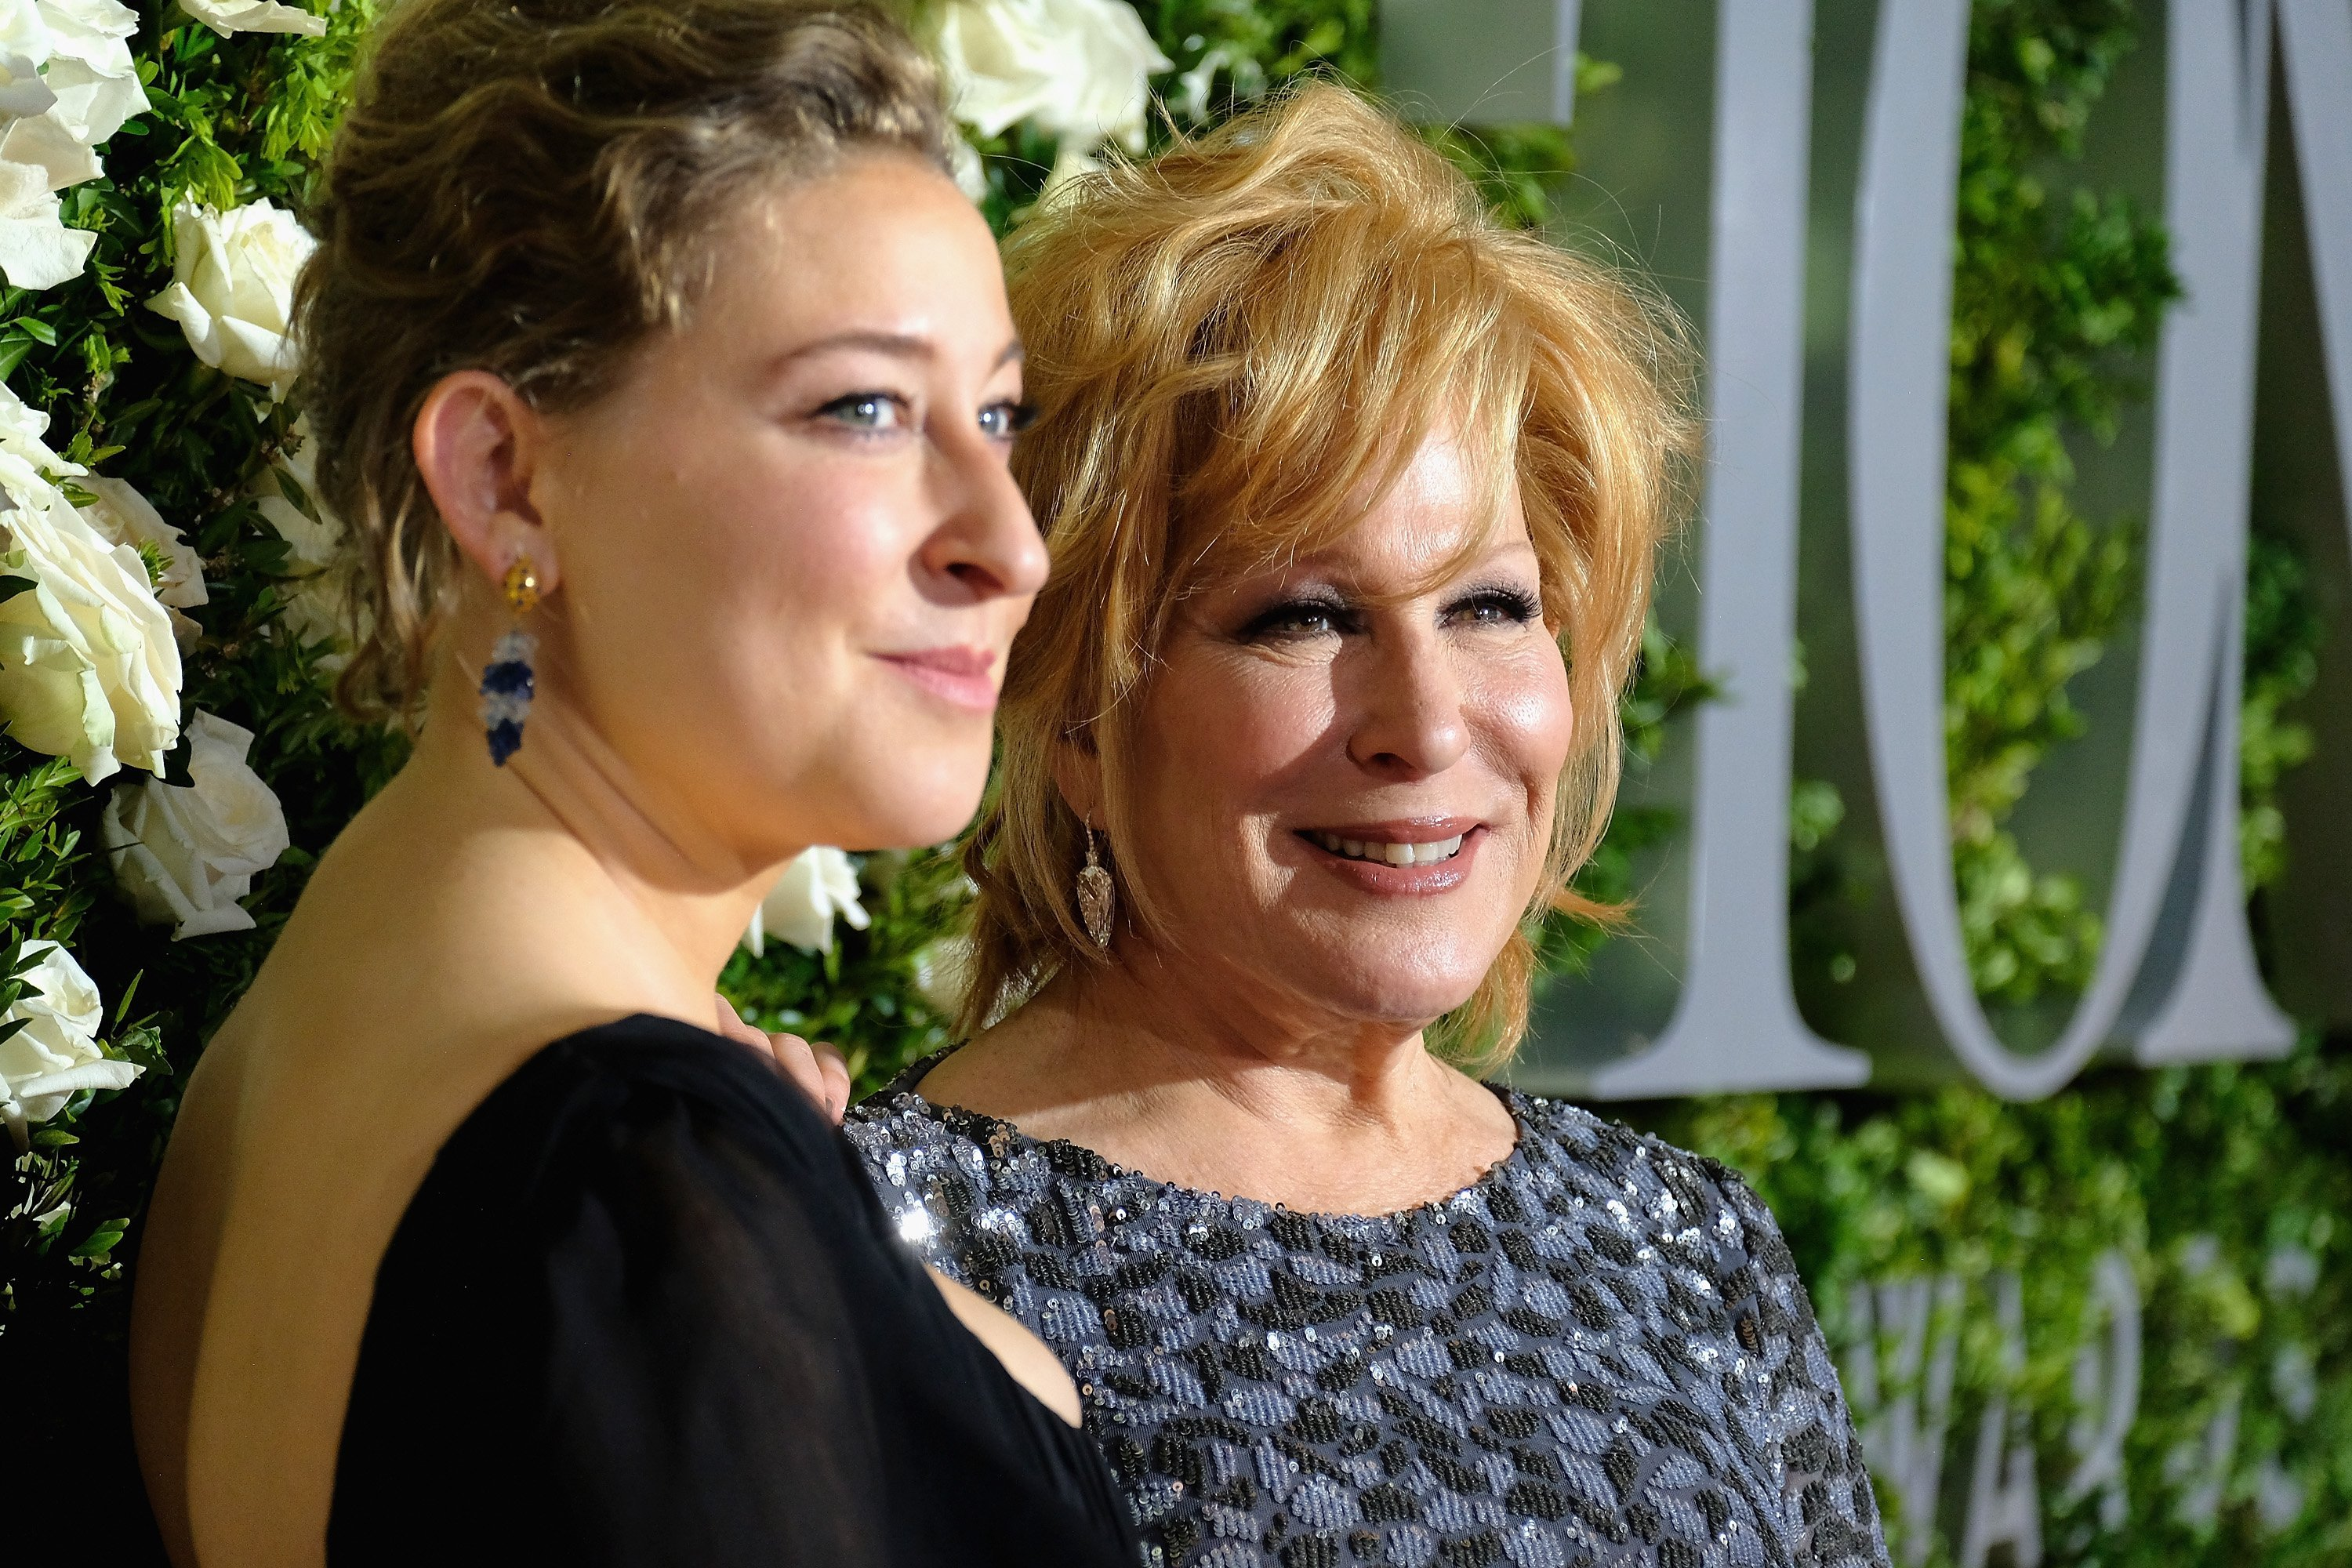 Sophie Von Haselberg with Better Midler at the 2017 Tony Awards at Radio City Music Hall   Photo: Getty Images